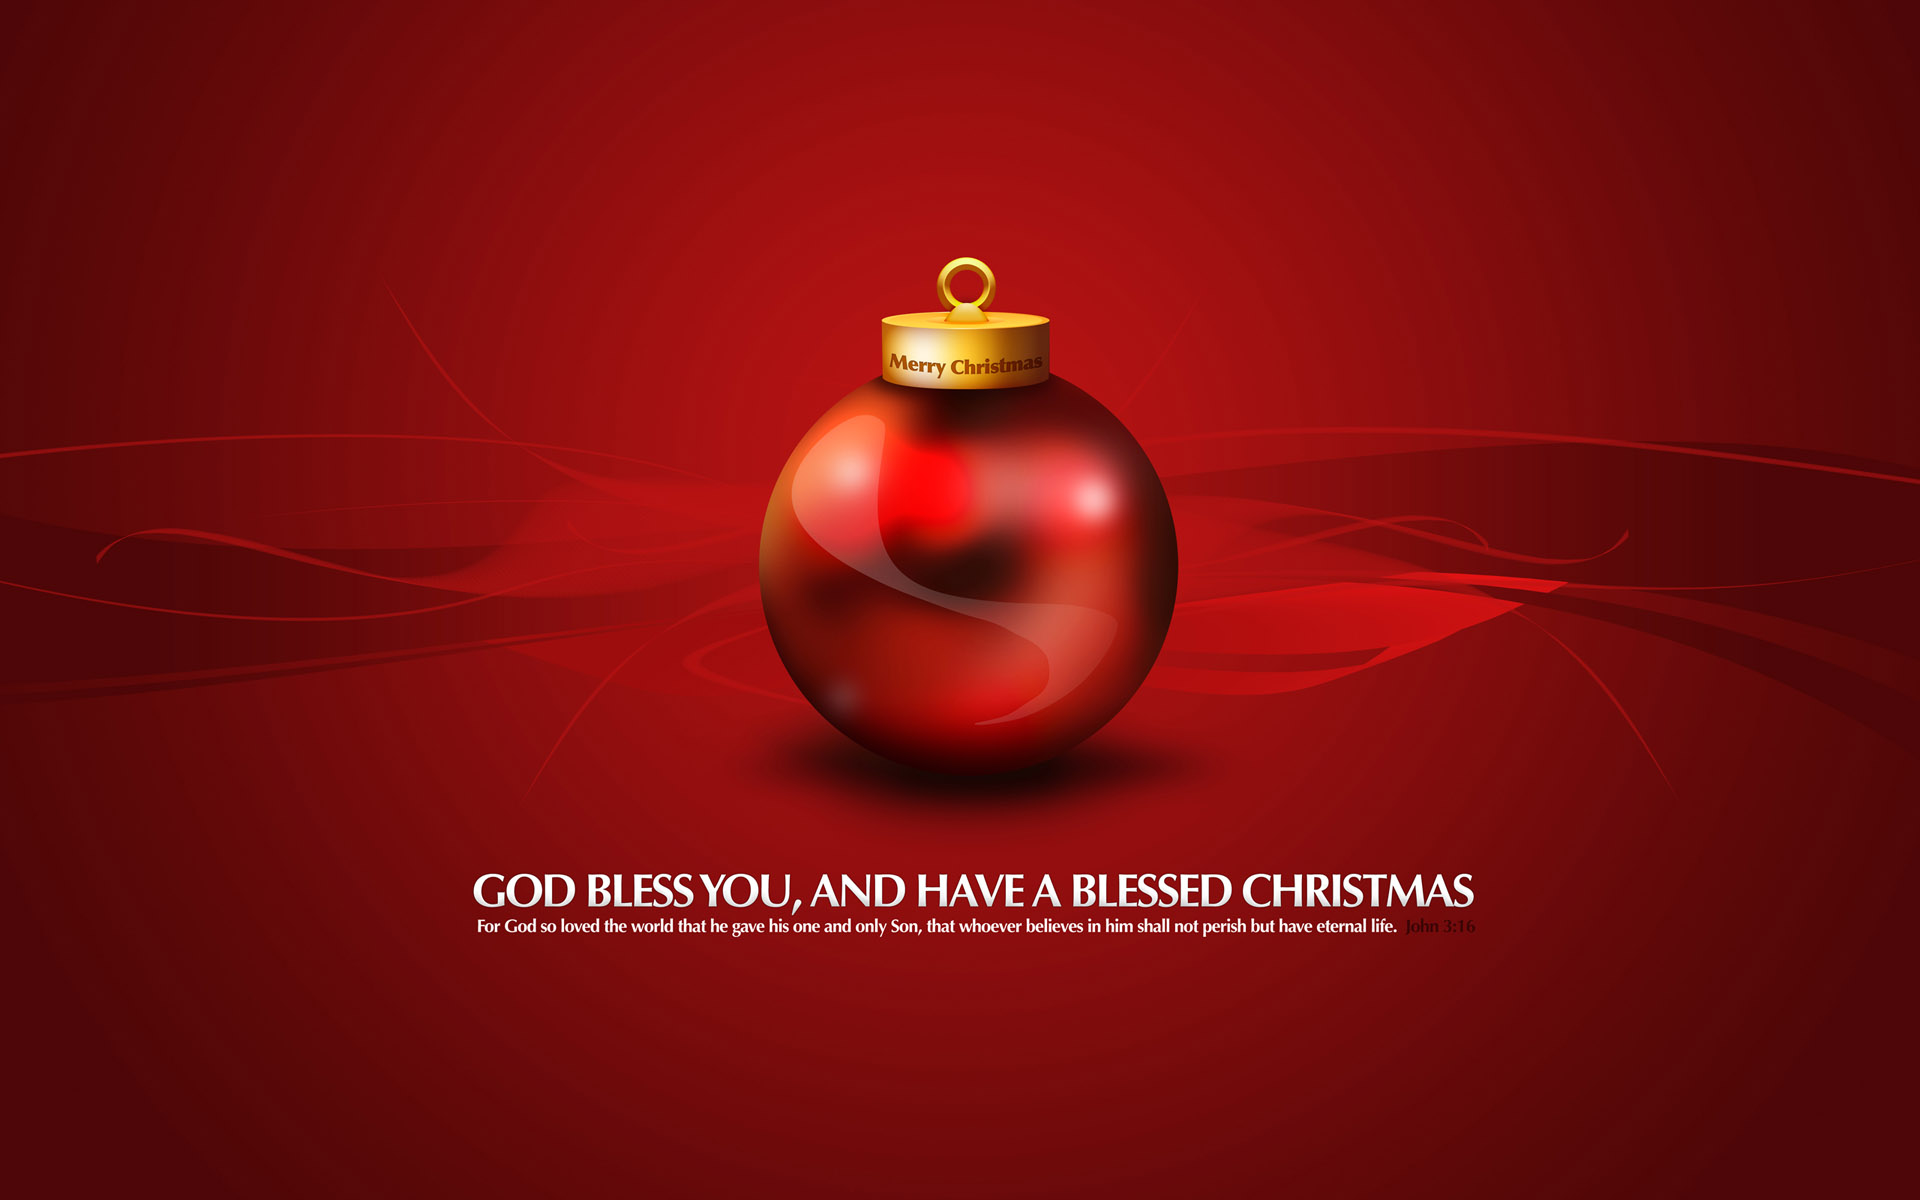 HD Wallpapers God Bless You Merry Chirstmas